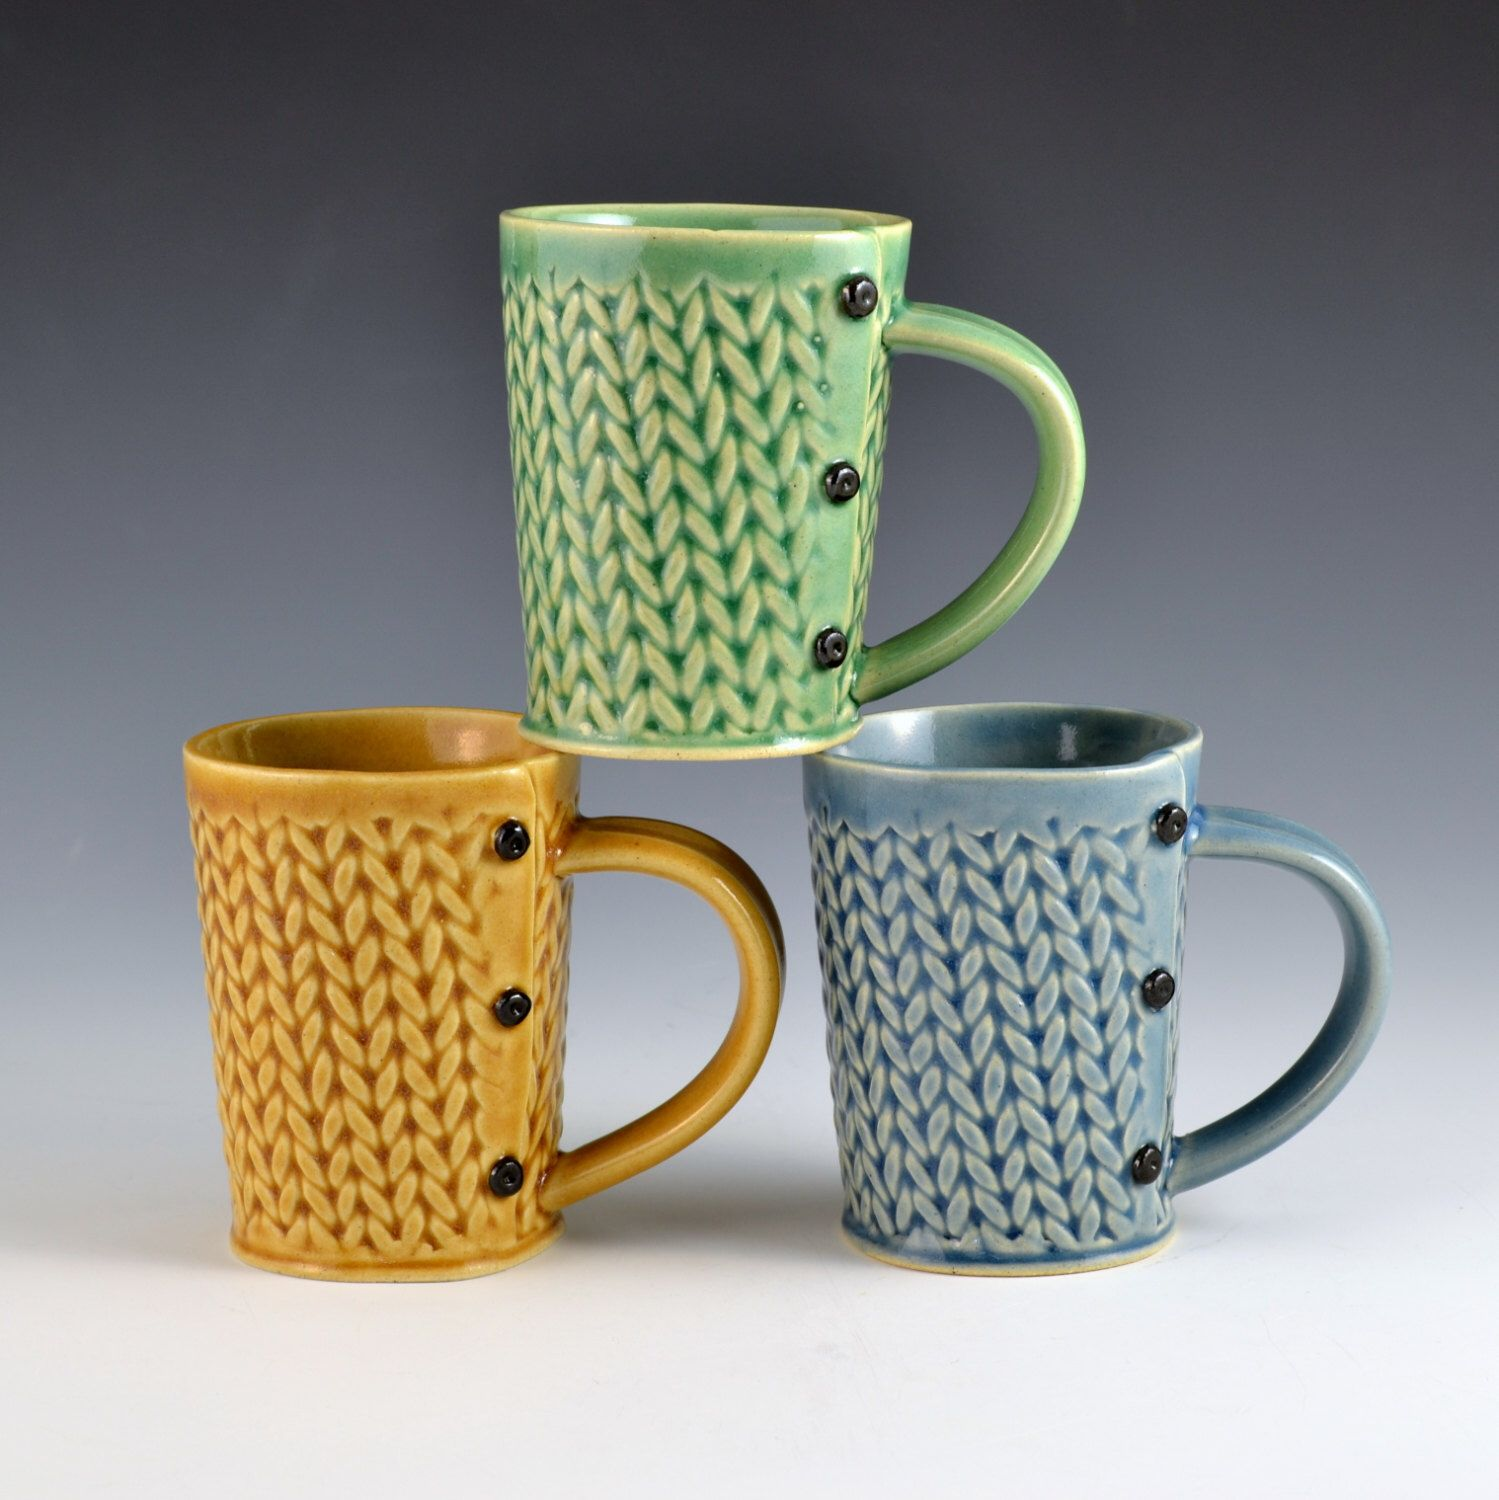 Medium Tea Cup Mug Knitted Pattern, tea cup, tea mug